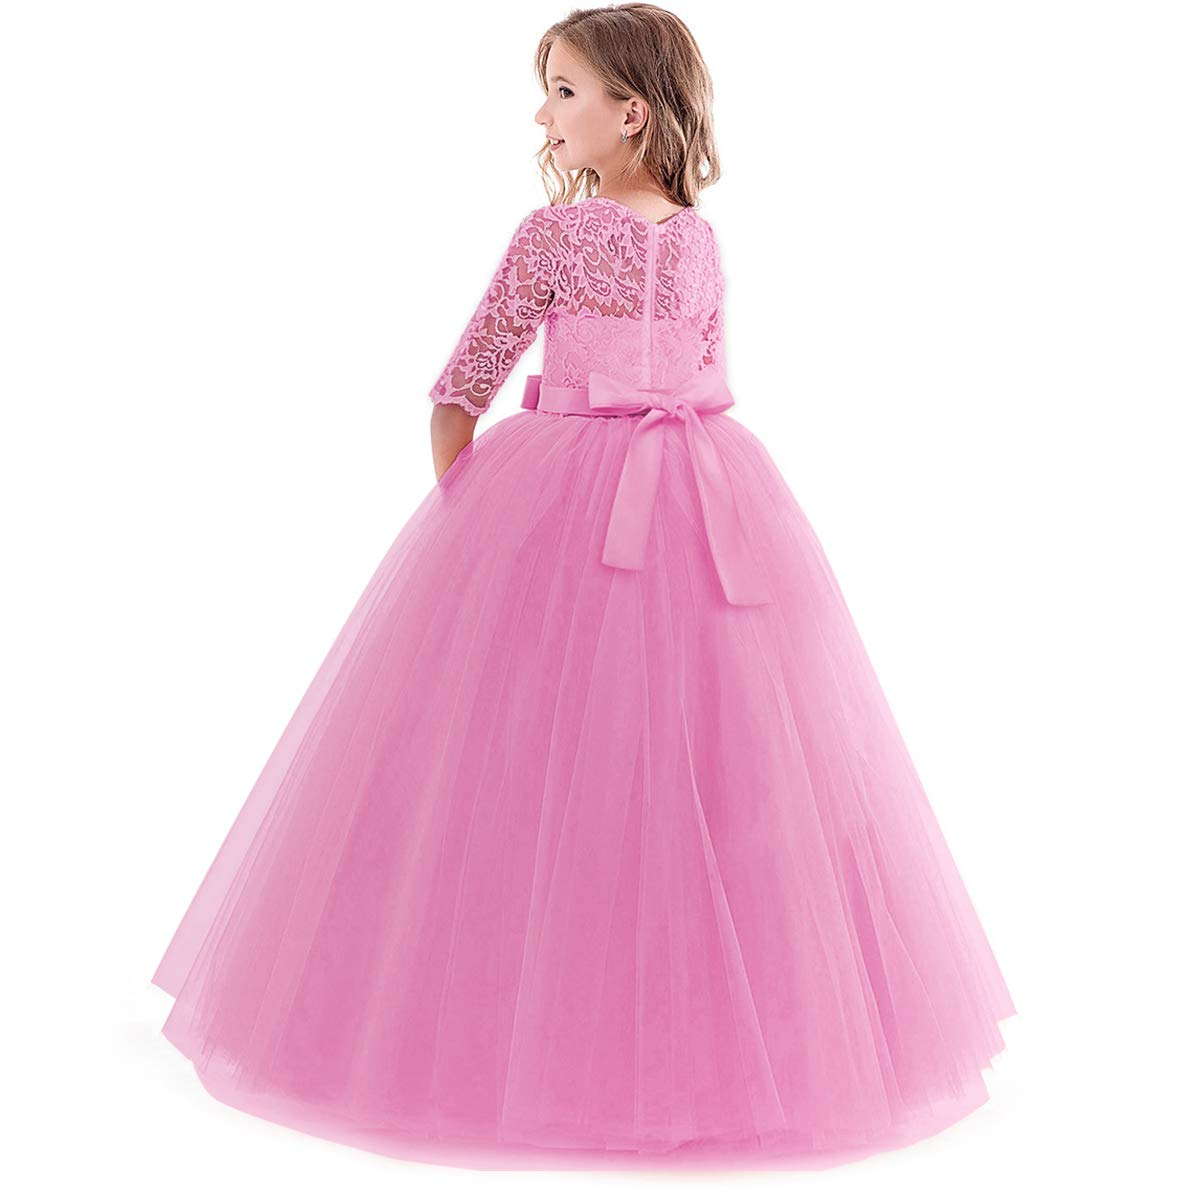 6b148bd7ad006 Amazon.com: Girl's Embroidery Tulle Lace Maxi Flower Girl Wedding Dress 3/4  Sleeve Long A Line Pageant Party Formal Dance Evening Gown: Clothing